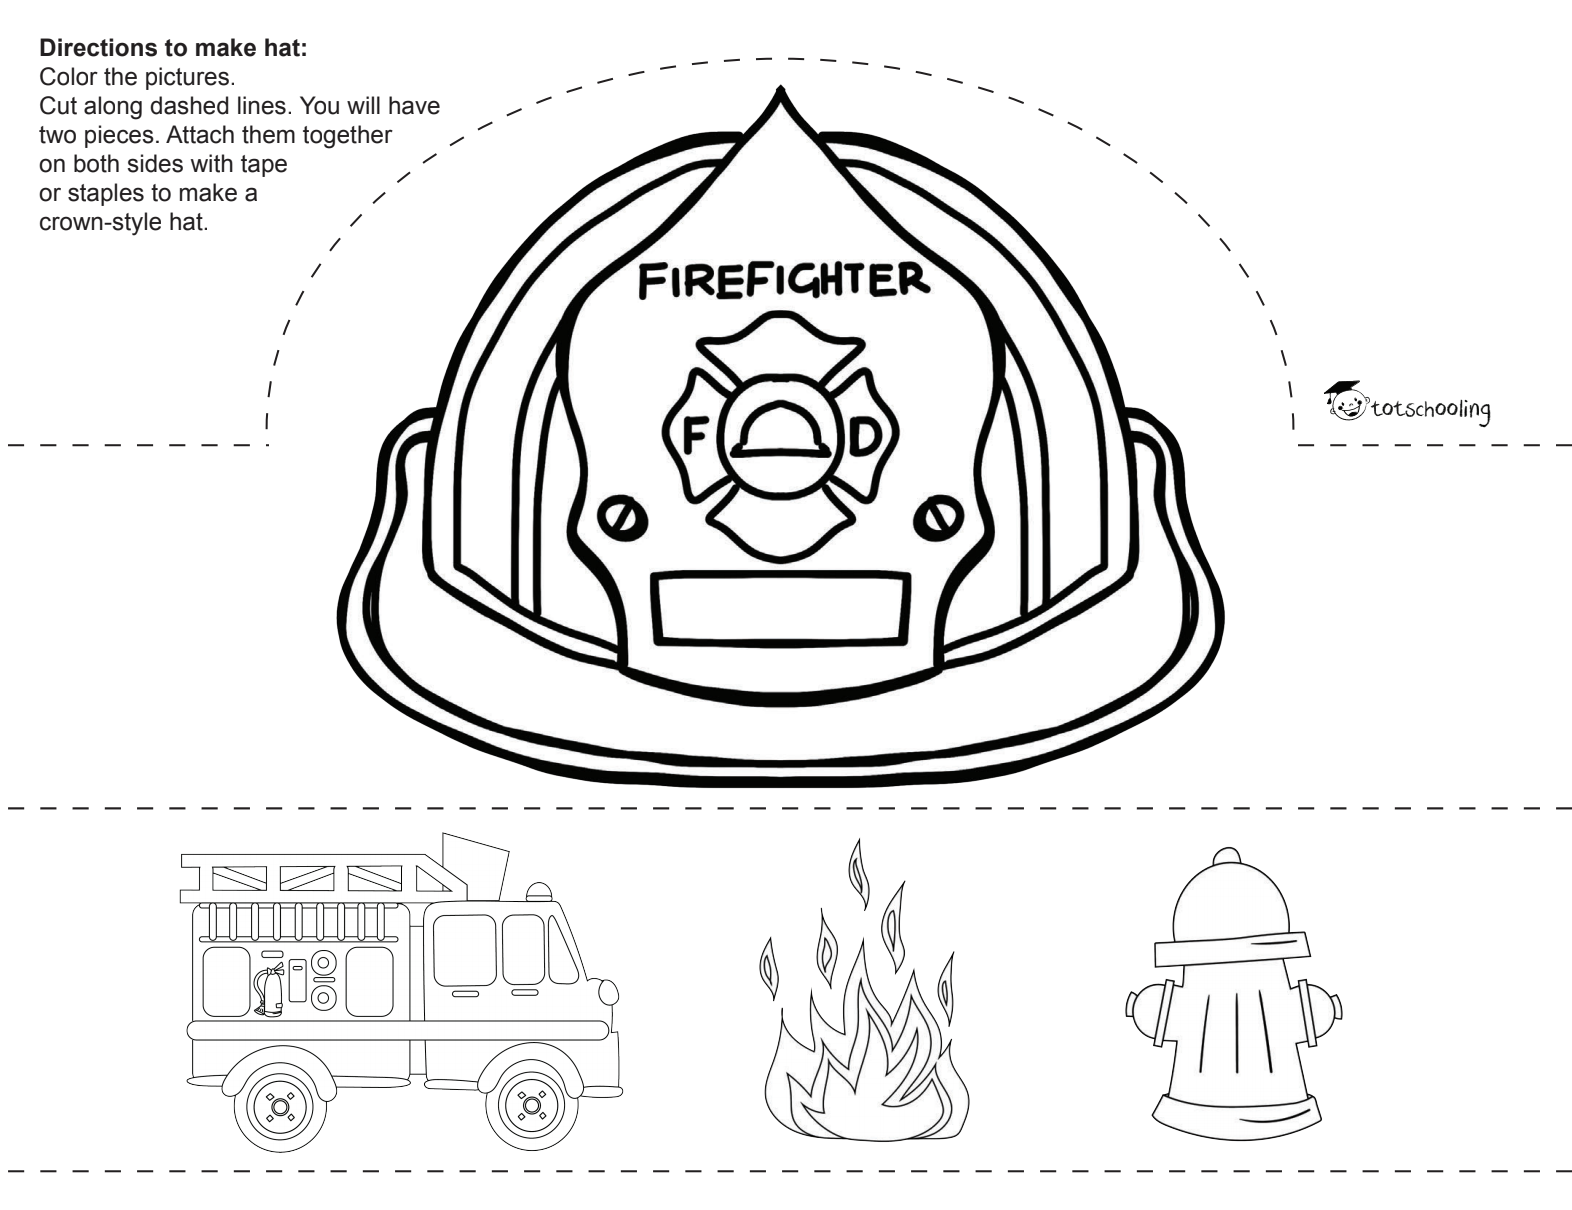 Firefighter Hats In